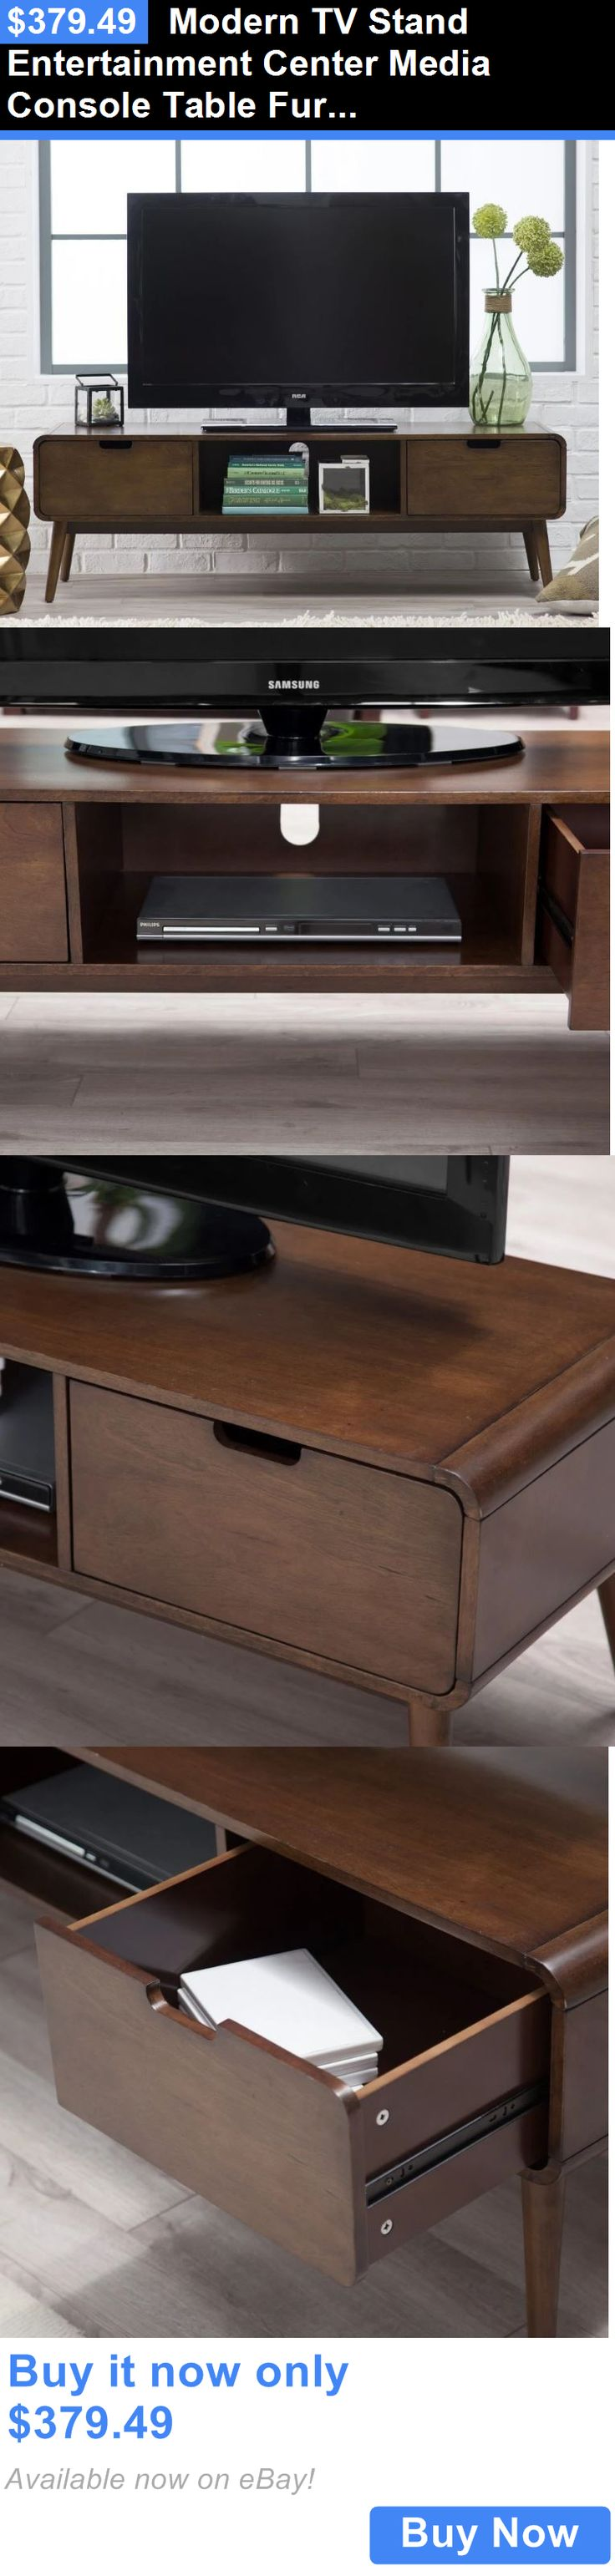 17 best ideas about modern tv stands on pinterest tv. Black Bedroom Furniture Sets. Home Design Ideas